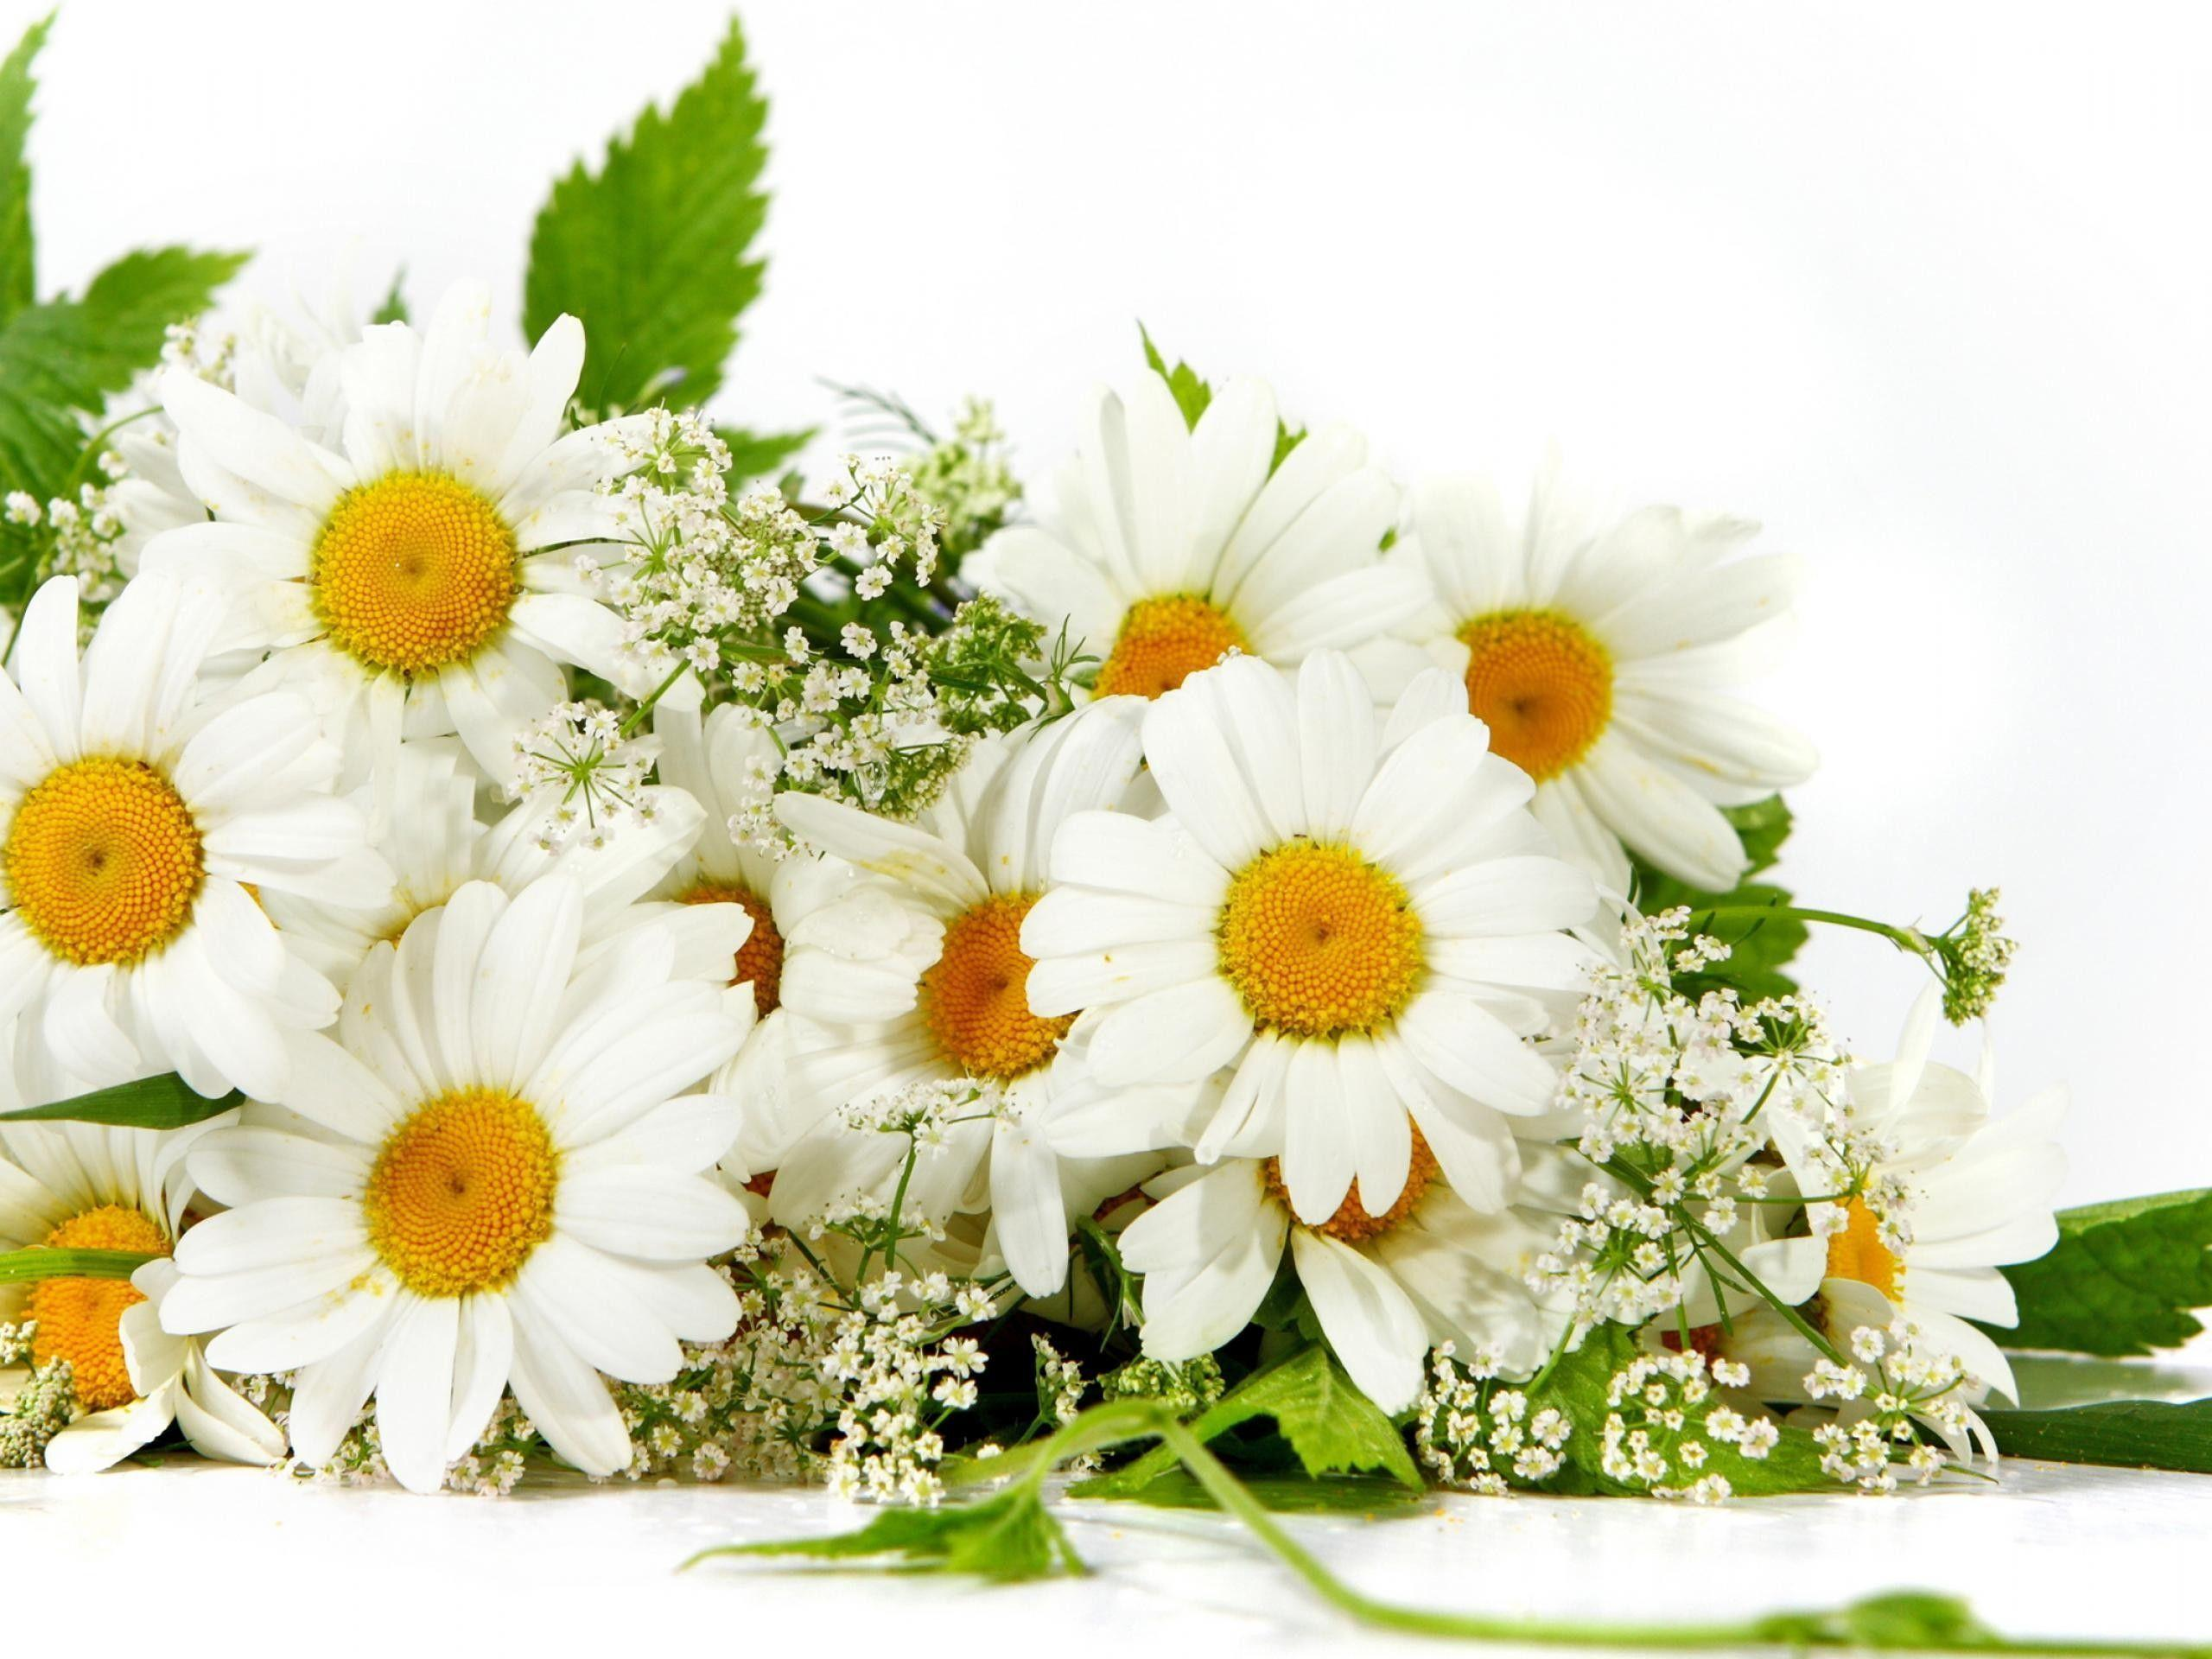 The Image of Nature Flowers Daisy Bouquet White Flowers 2560x1920